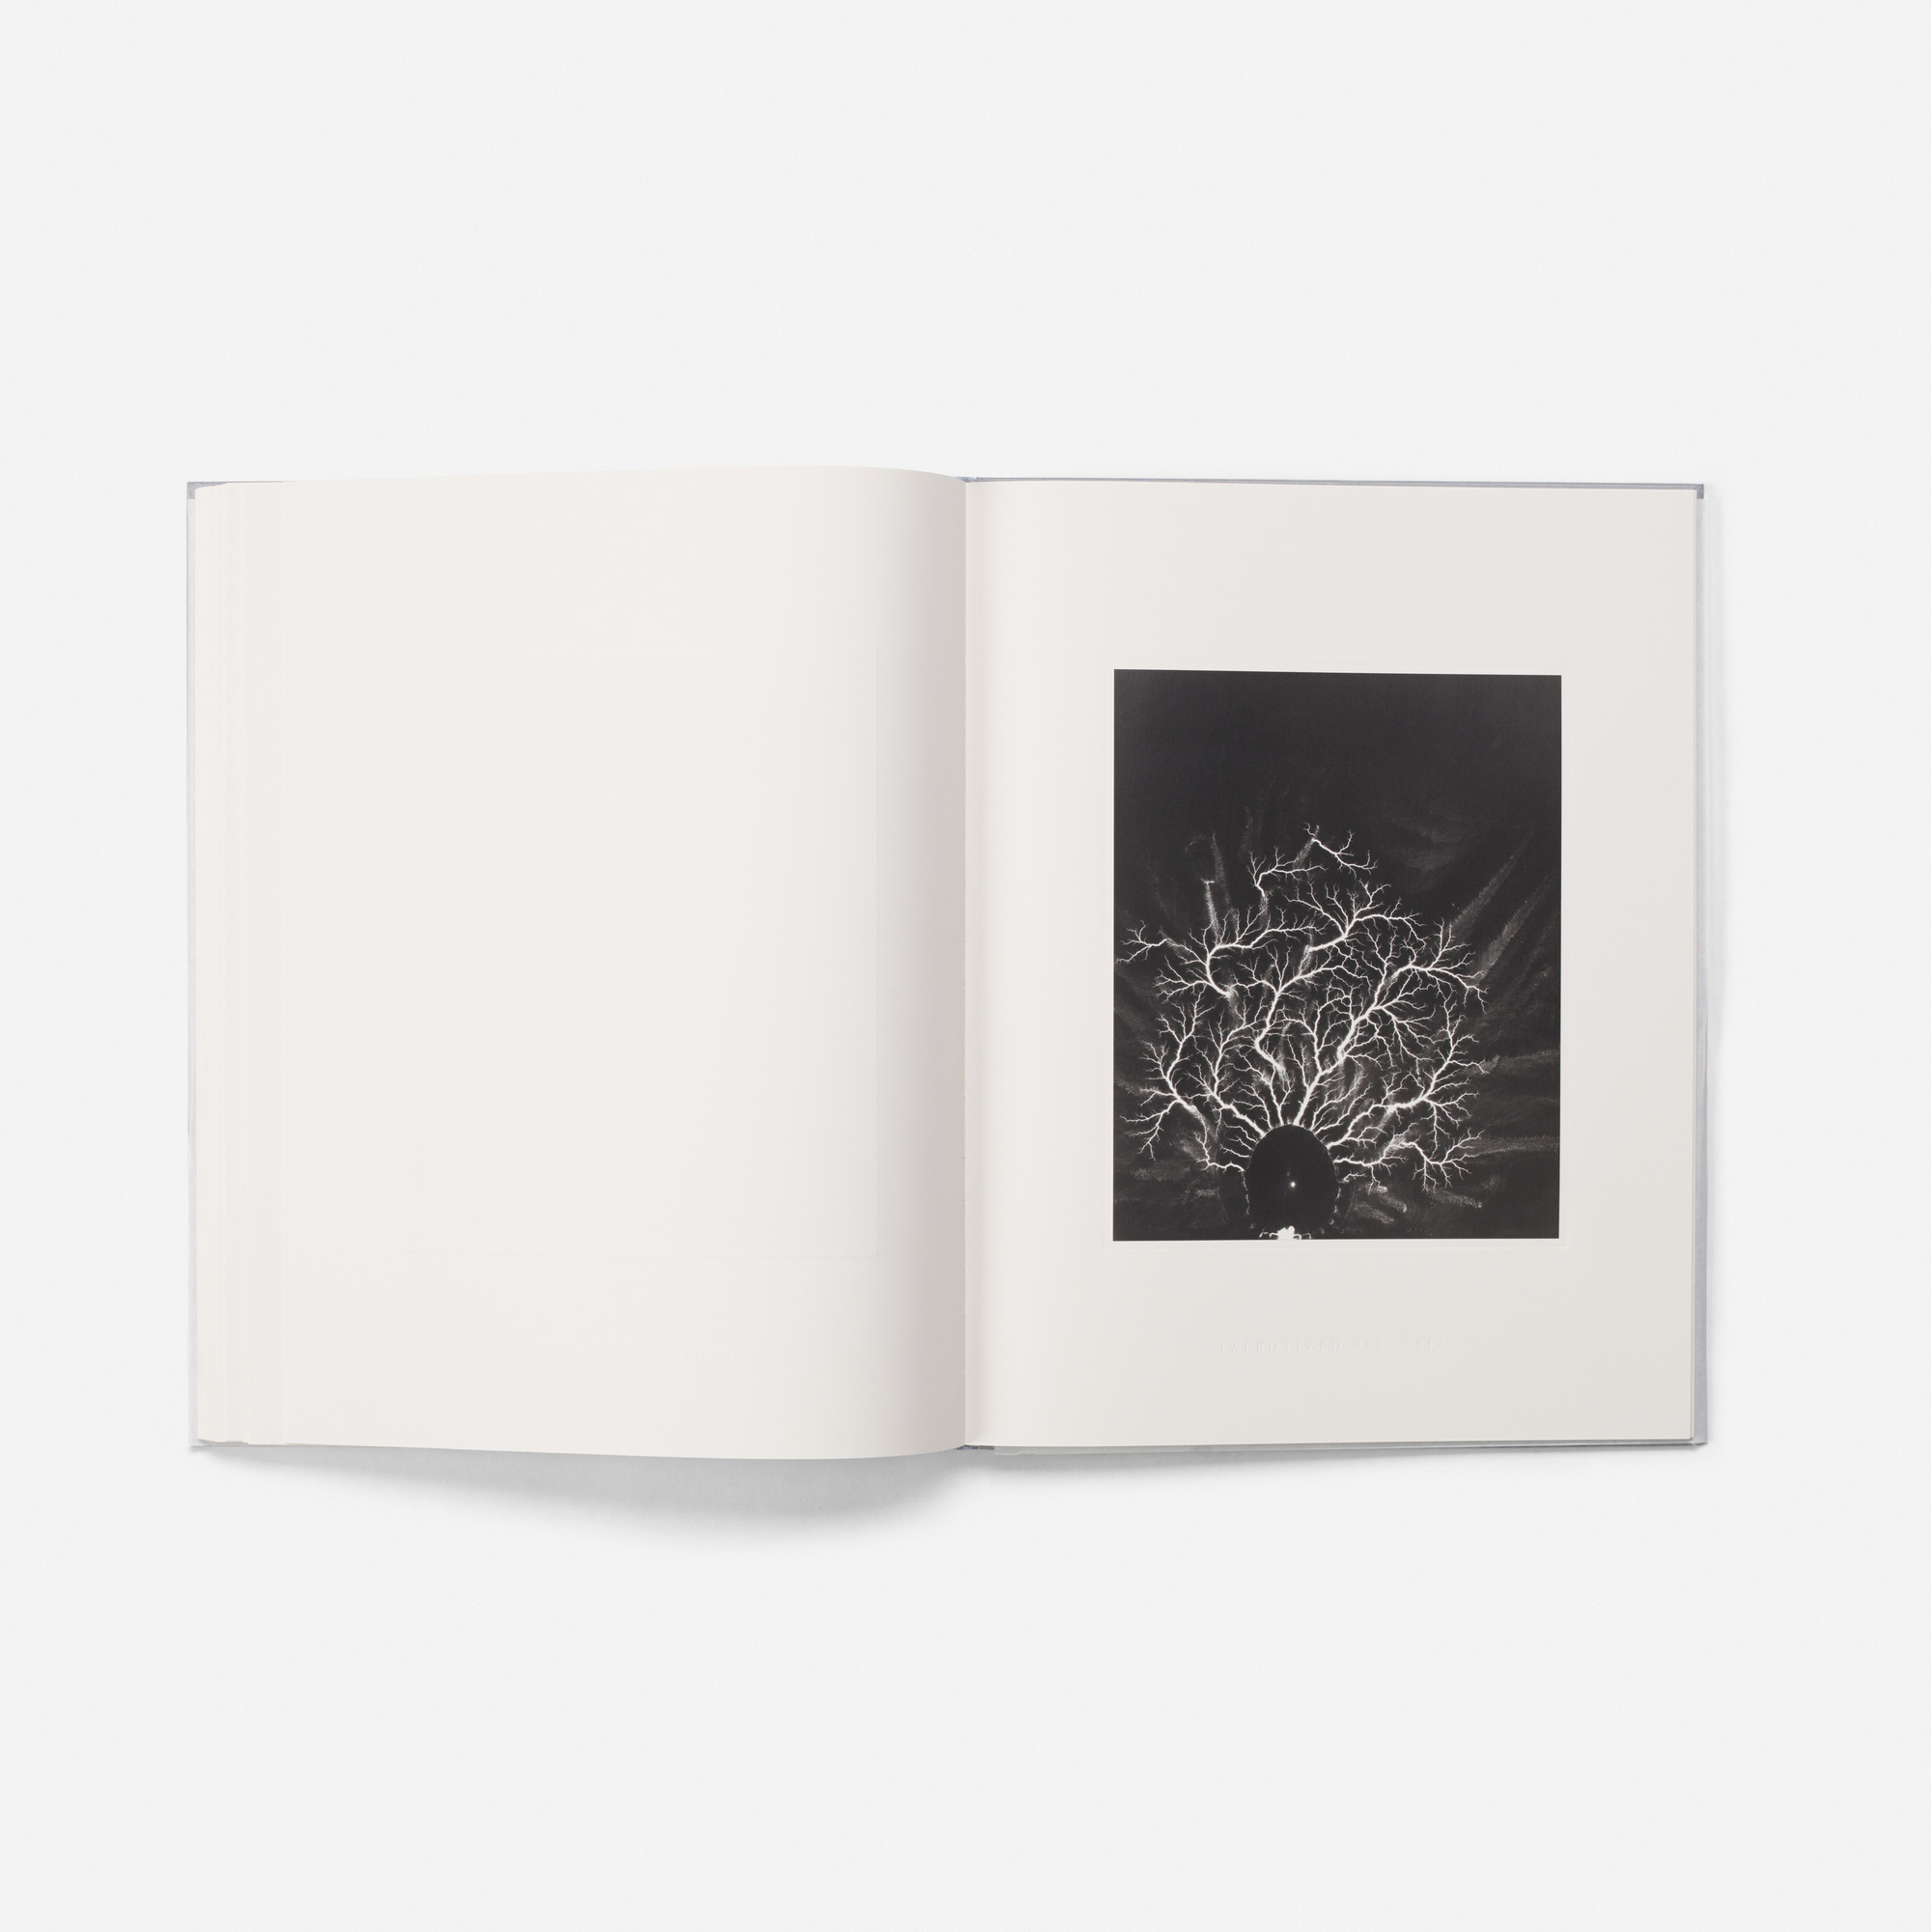 230: Hiroshi Sugimoto / The Long Never and Lightning Fields 304 (6 of 10)